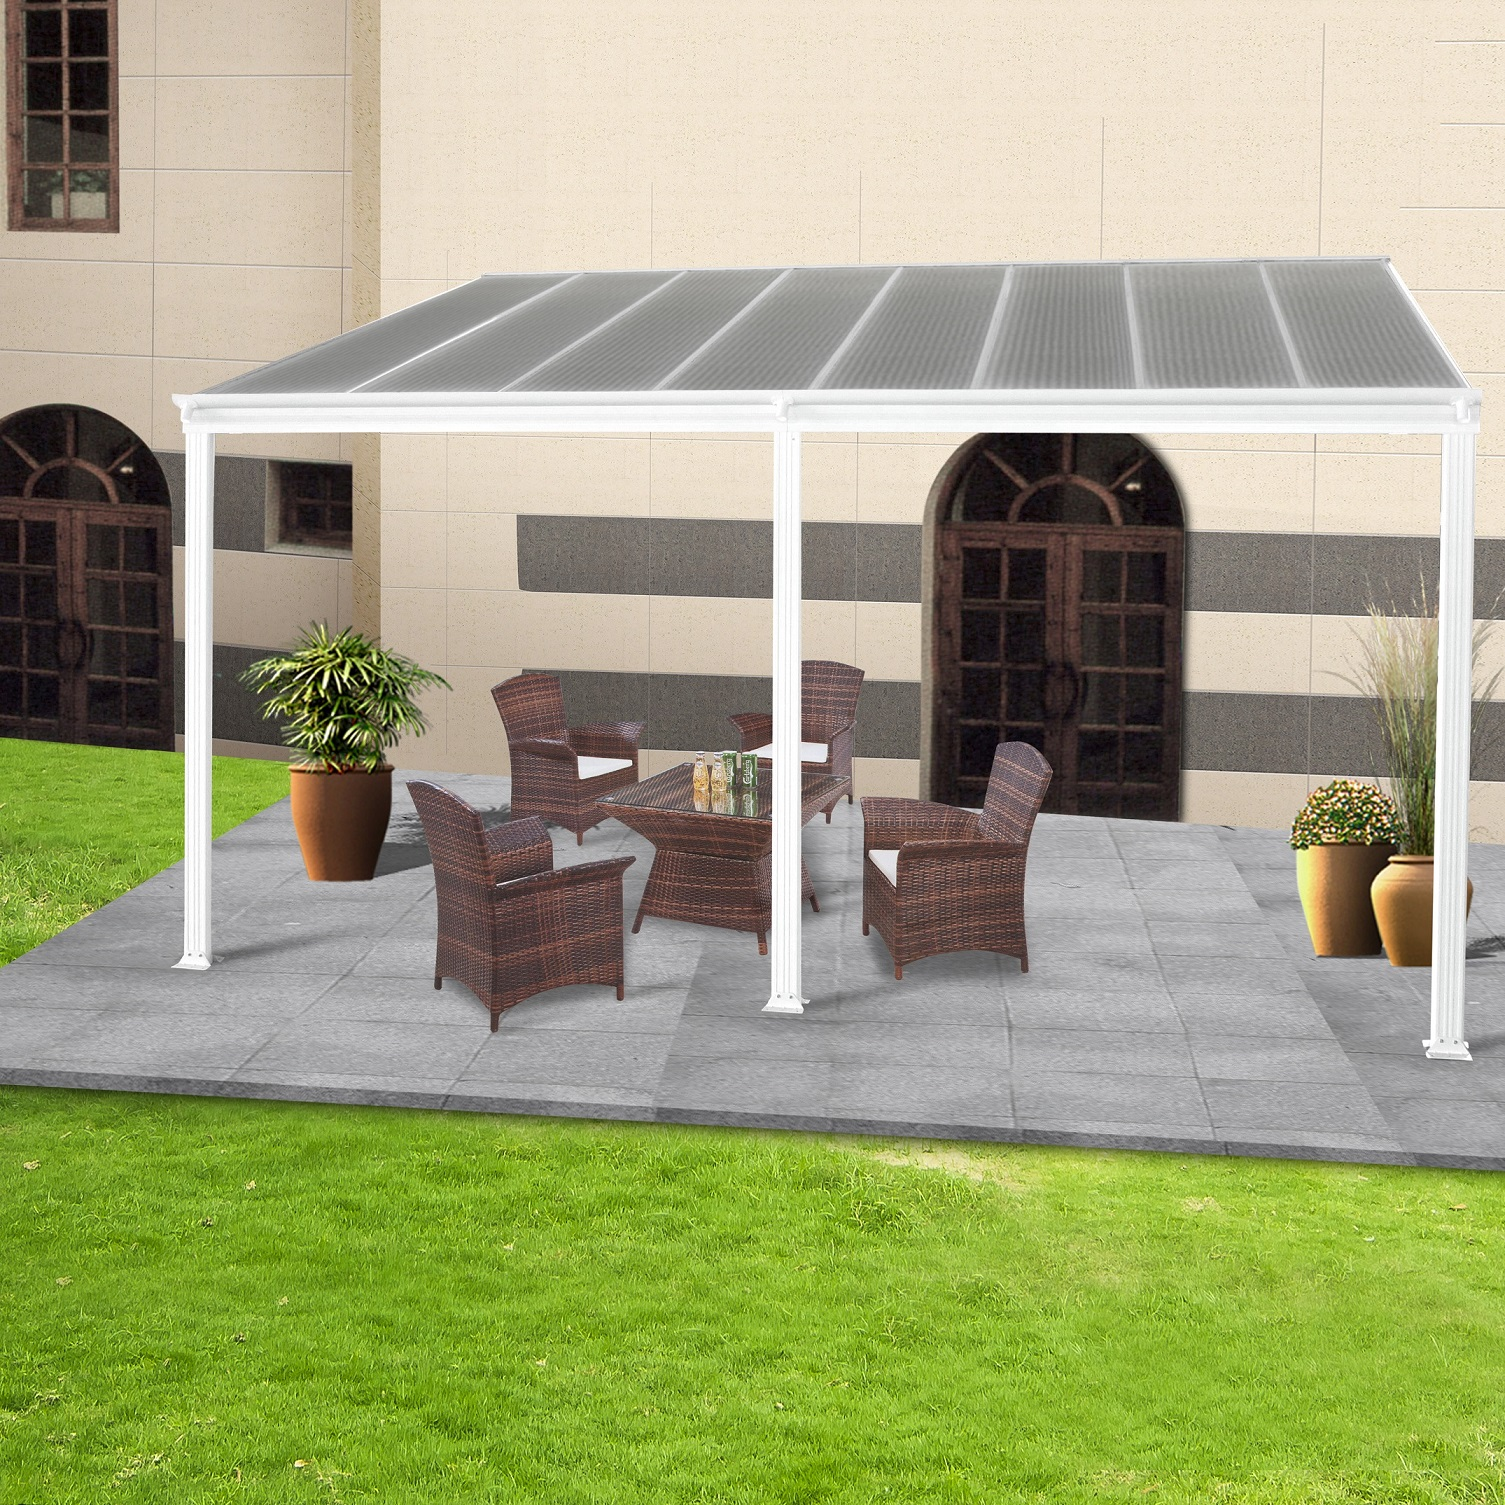 toit terrasse pergola 5x3 m en aluminium blanc abrirama. Black Bedroom Furniture Sets. Home Design Ideas